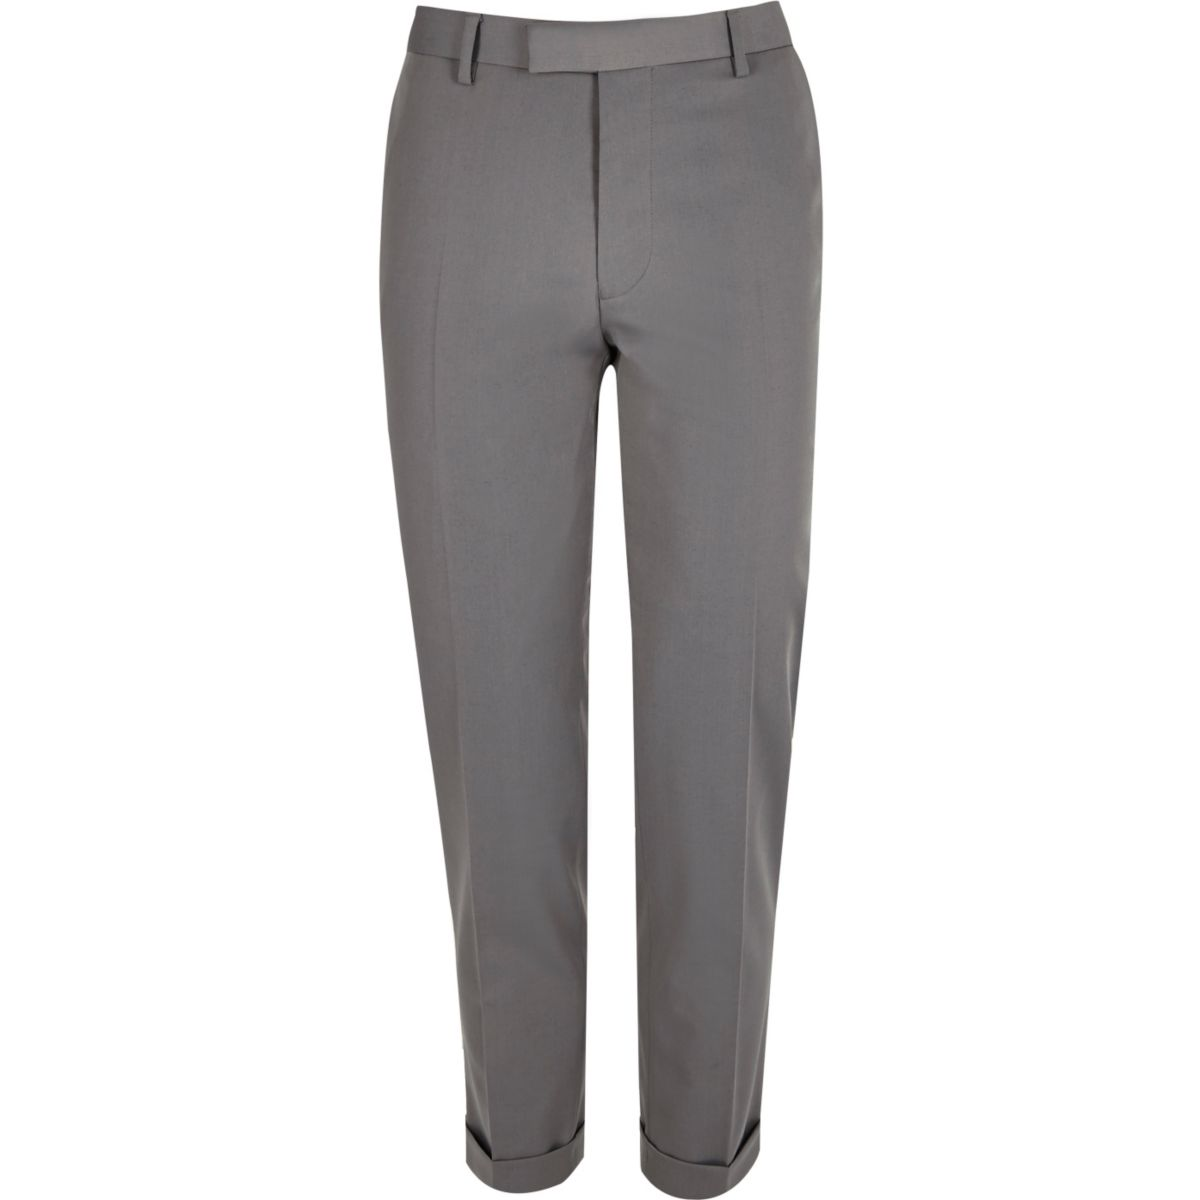 Light grey slim suit trousers